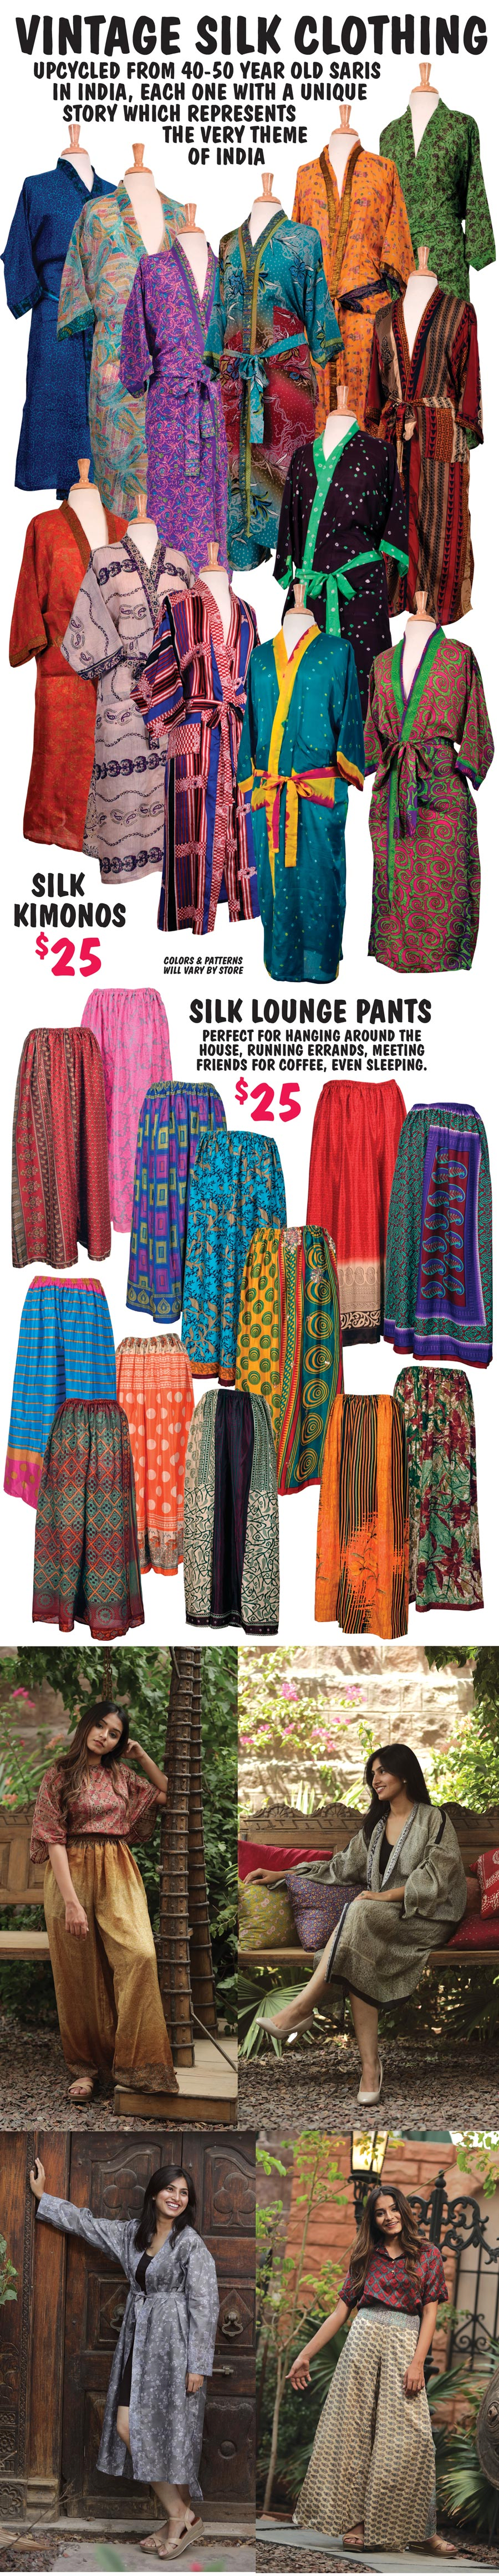 Vintage Silk Kimonos or Lounge Pants - your choice $25. Beautiful, vibrant color combinations.